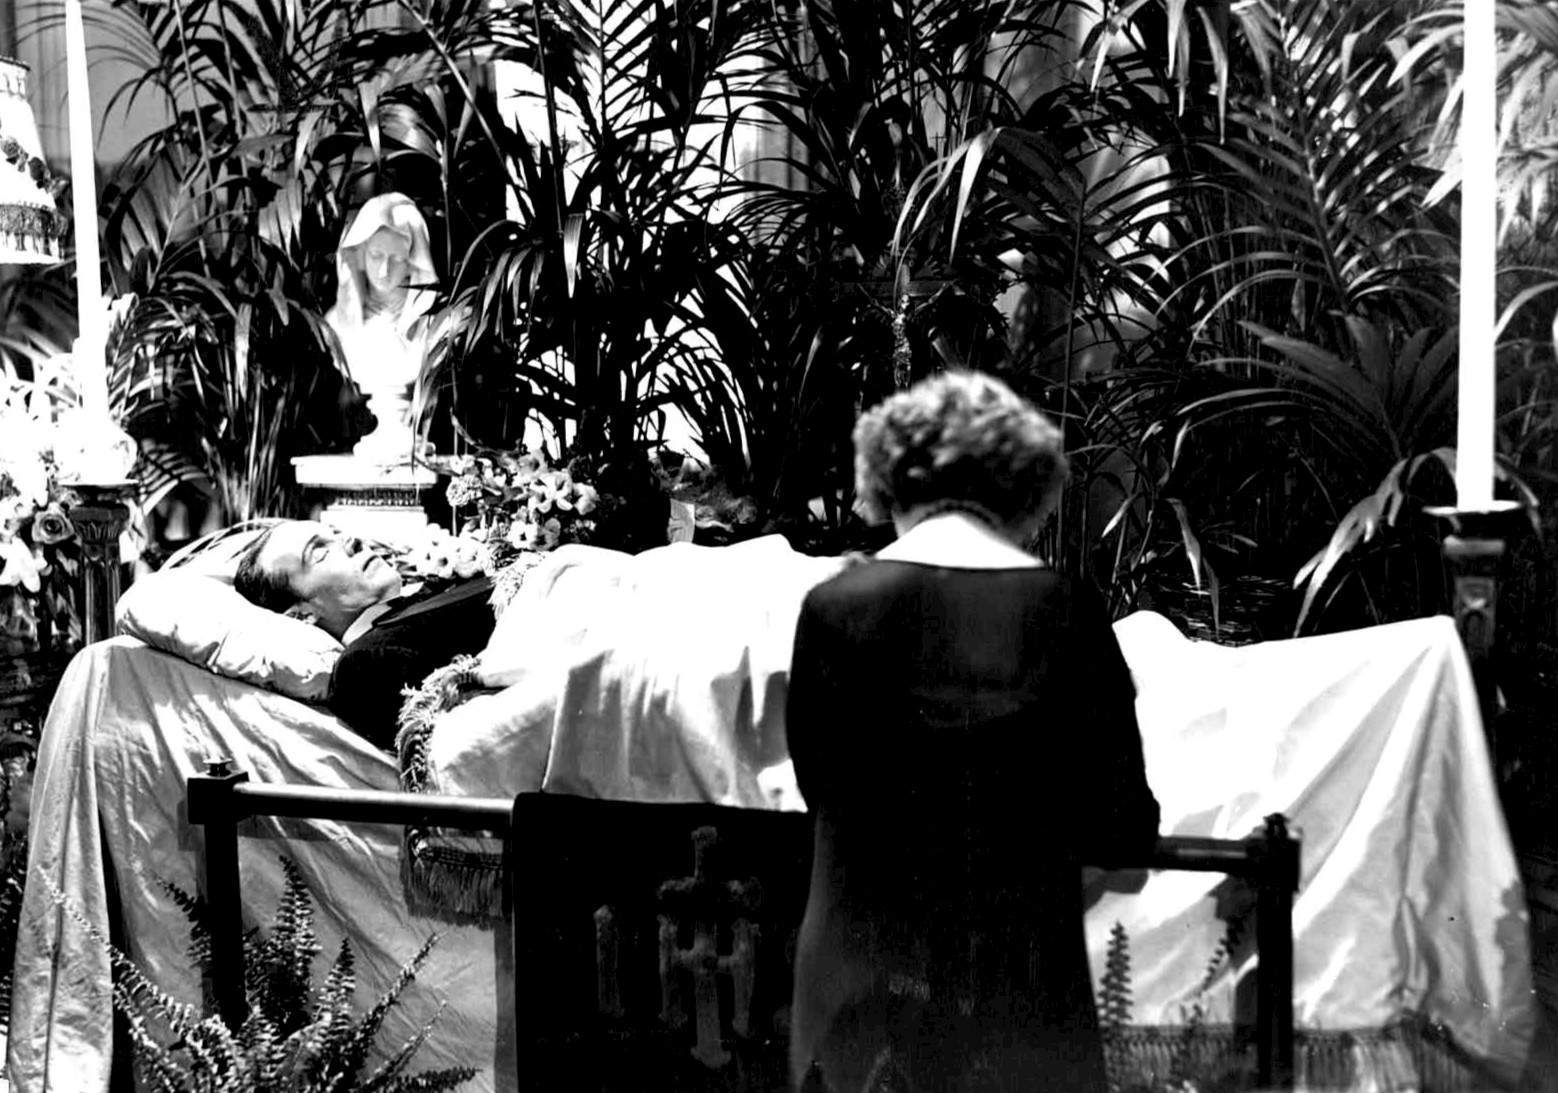 Black and white photo of Rudolph Valentino in open coffin surrounded by plants with woman mourning over his body